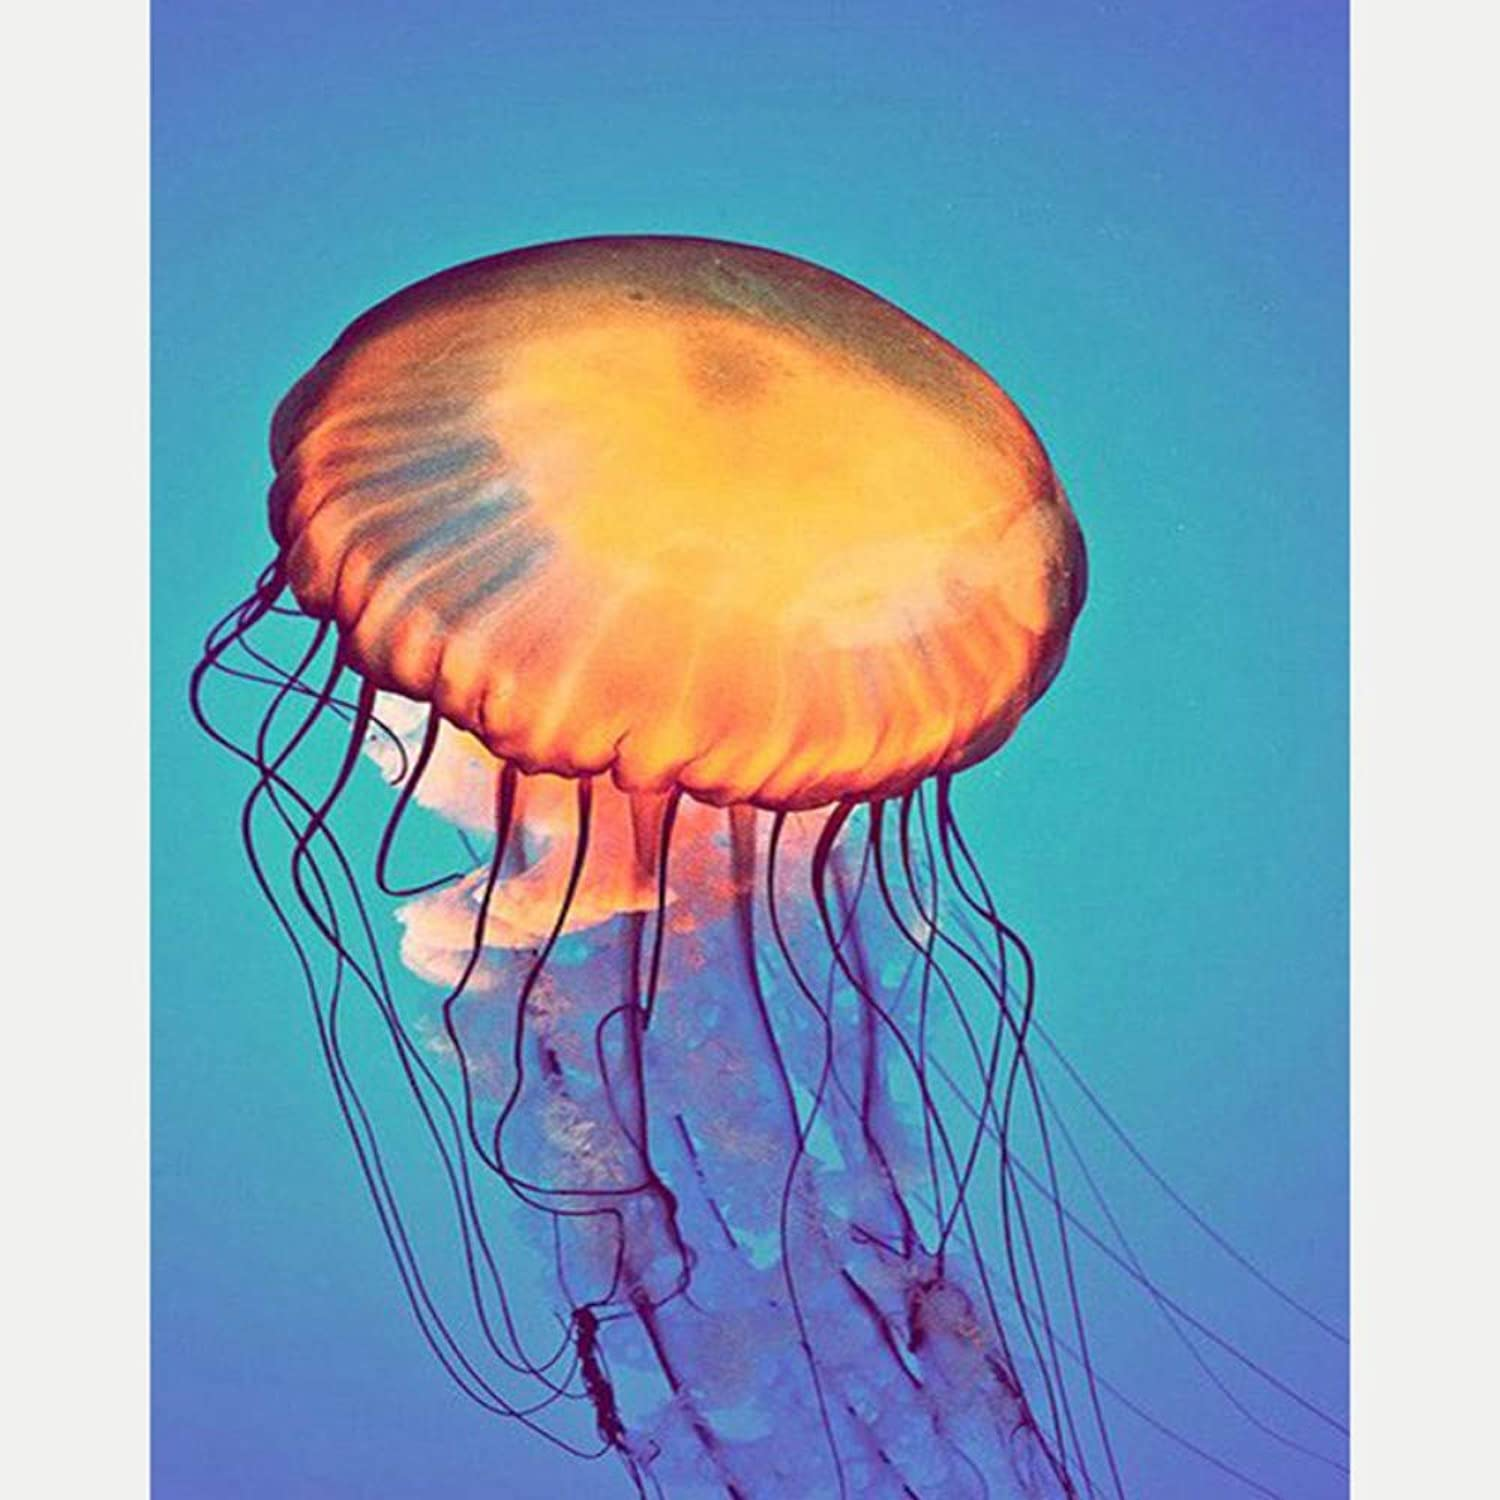 Paint by Numbers for Senior Junior Beginner Level Painting by Numbers Set Jelly Fish with Brushes Paints and Canvas Home Decor 16X20 Inch